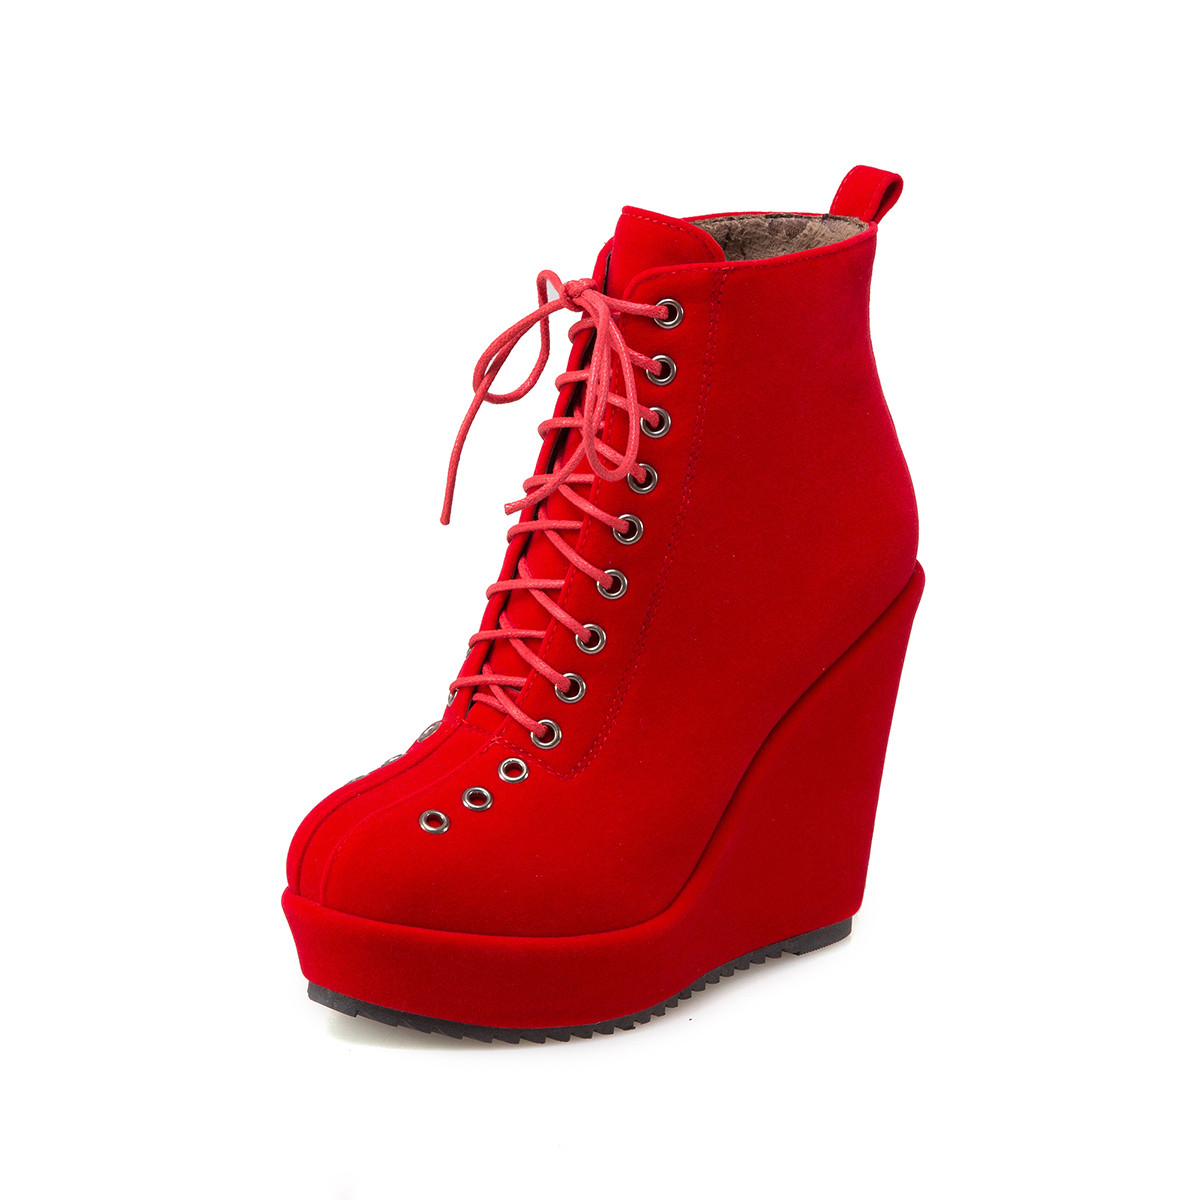 7bd1fdd1ae601 Detail Feedback Questions about BONJOMARISA Women's Lace Up Vintage High  Heel Wedge Shoes Woman Round Toe Platform Ankle Boots Big Size 34 43 on ...